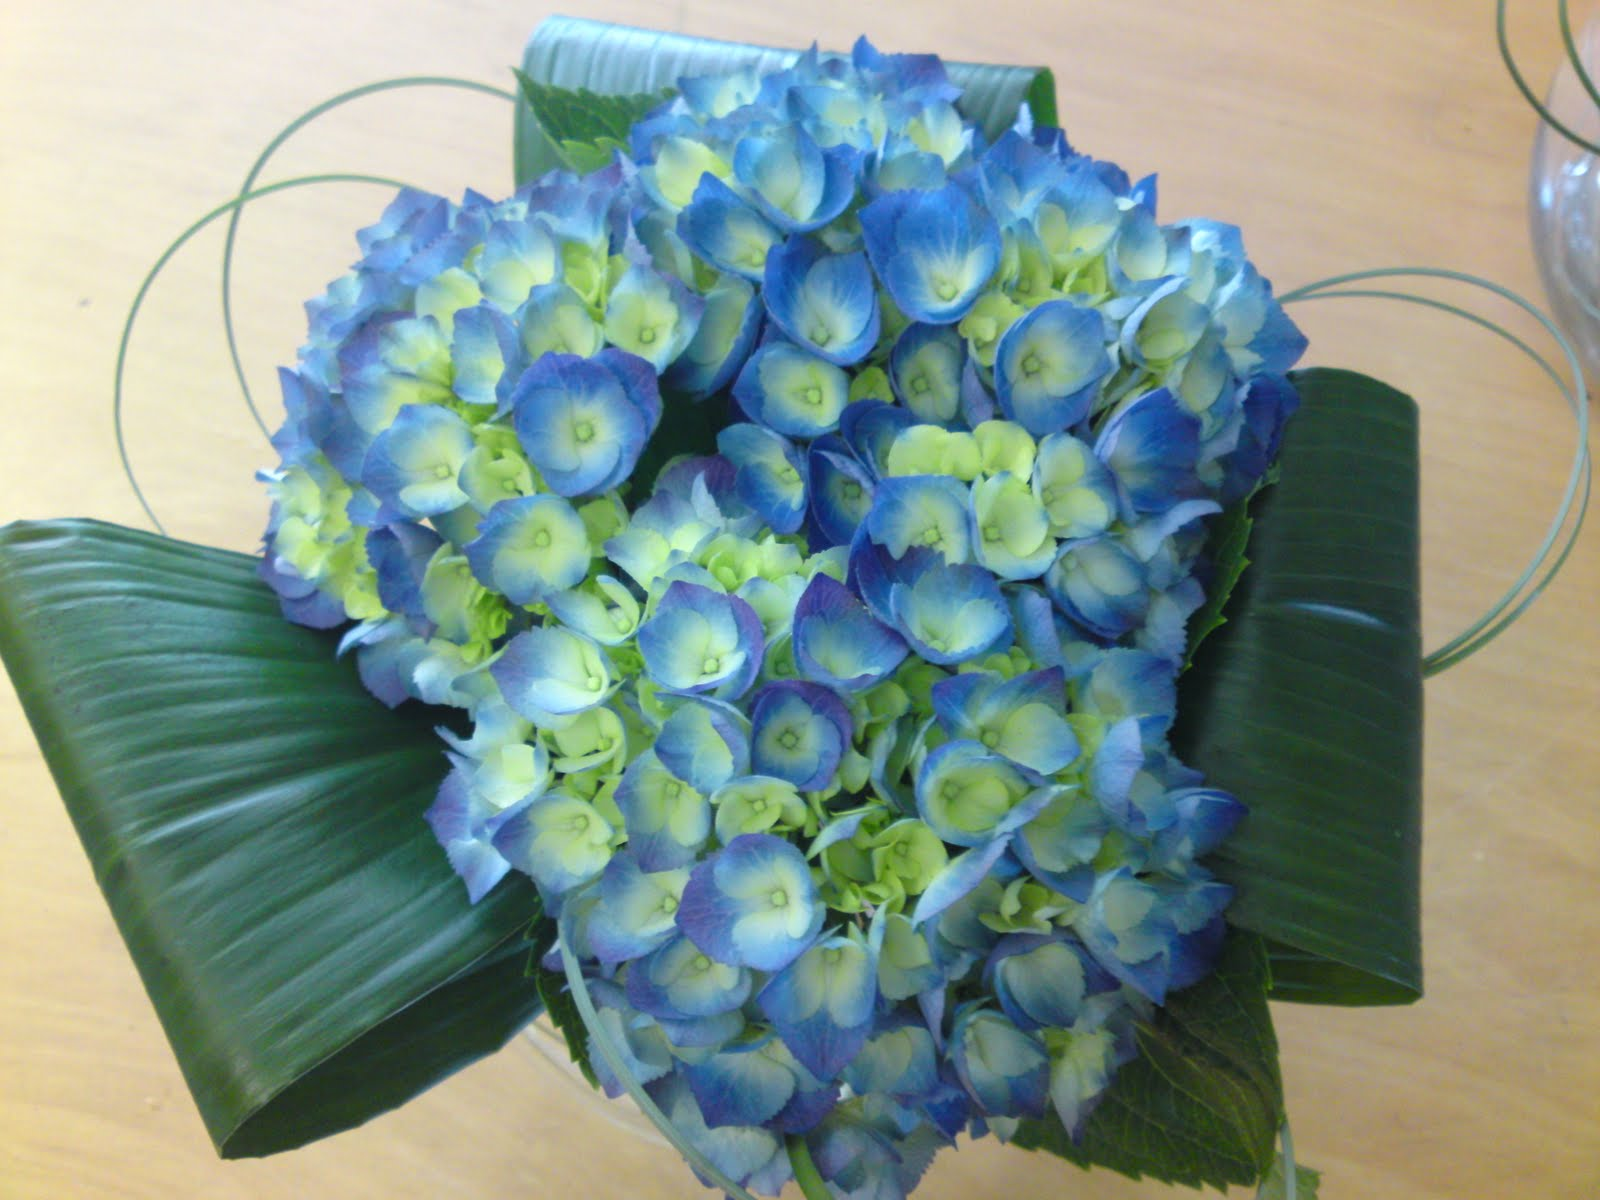 More blue themed flowers.